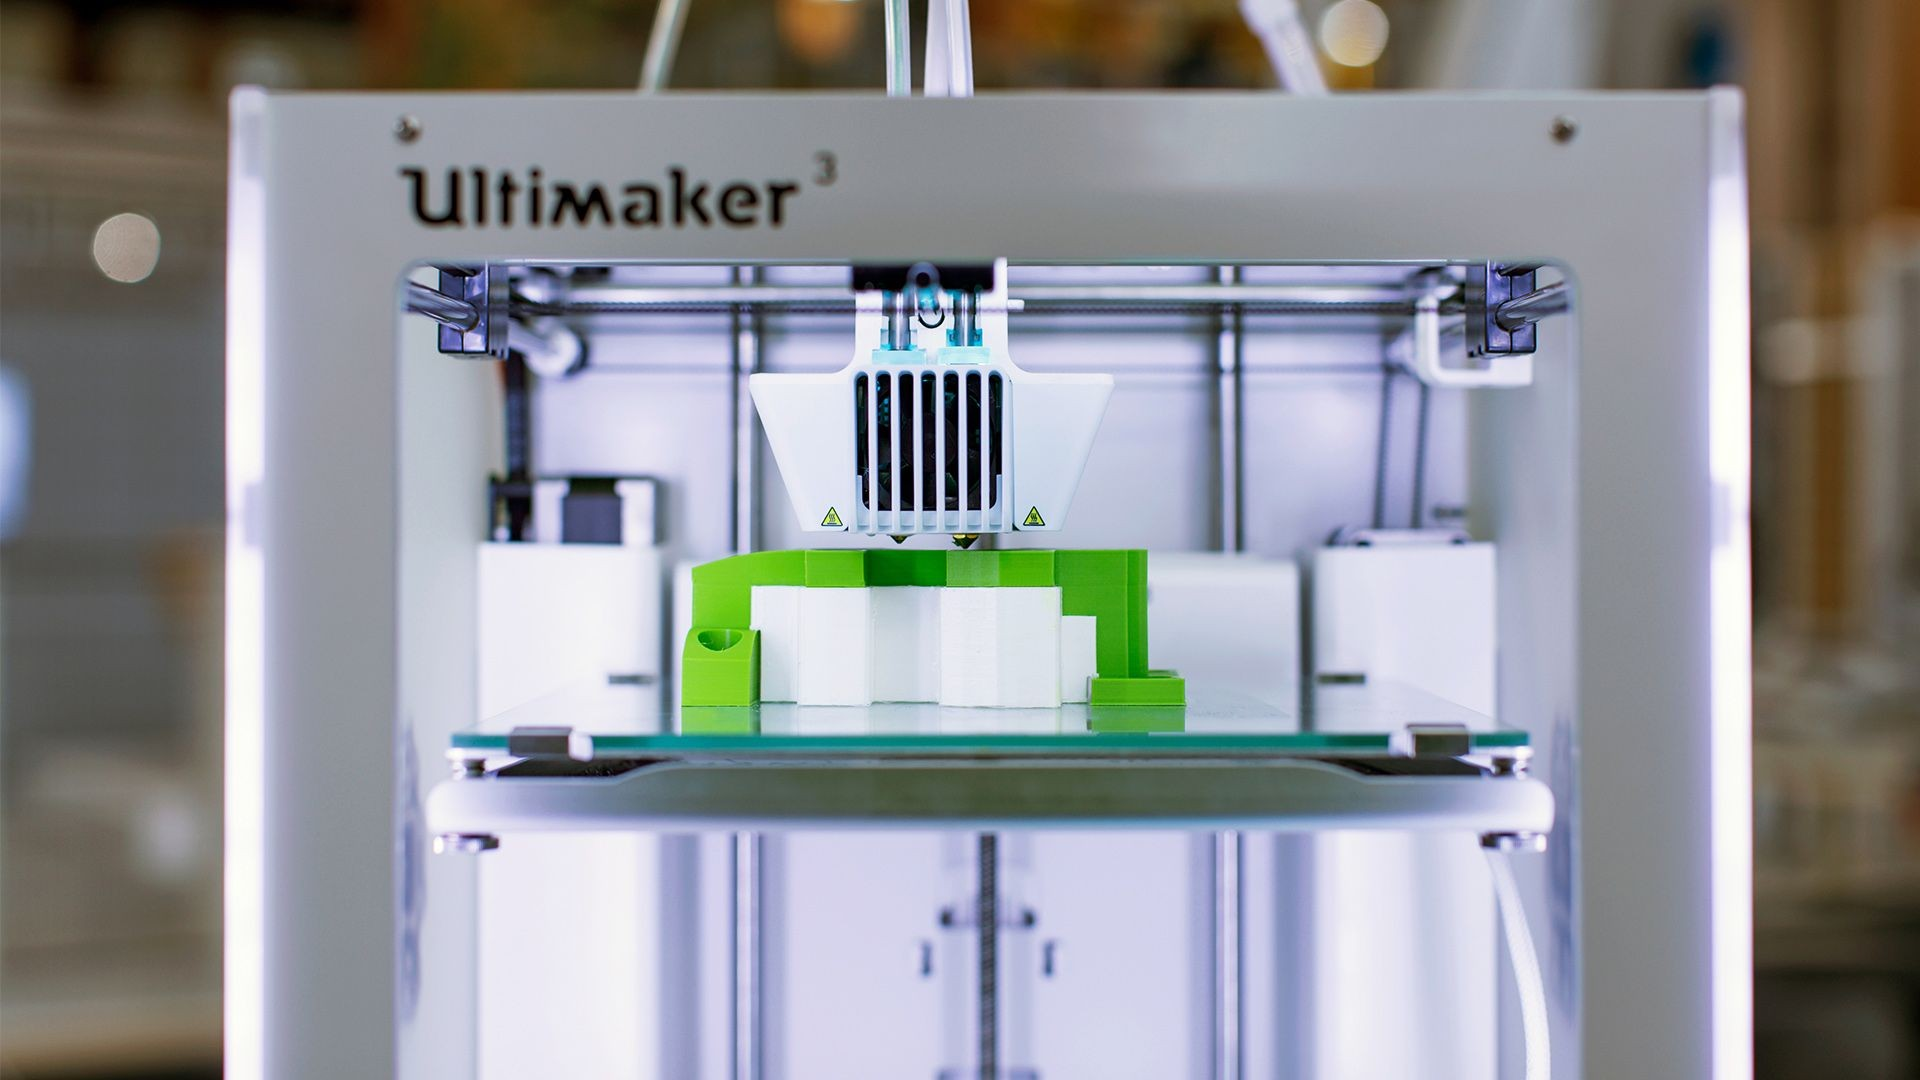 Ultimaker introduces 0.25 print core and Ultimaker Breakaway